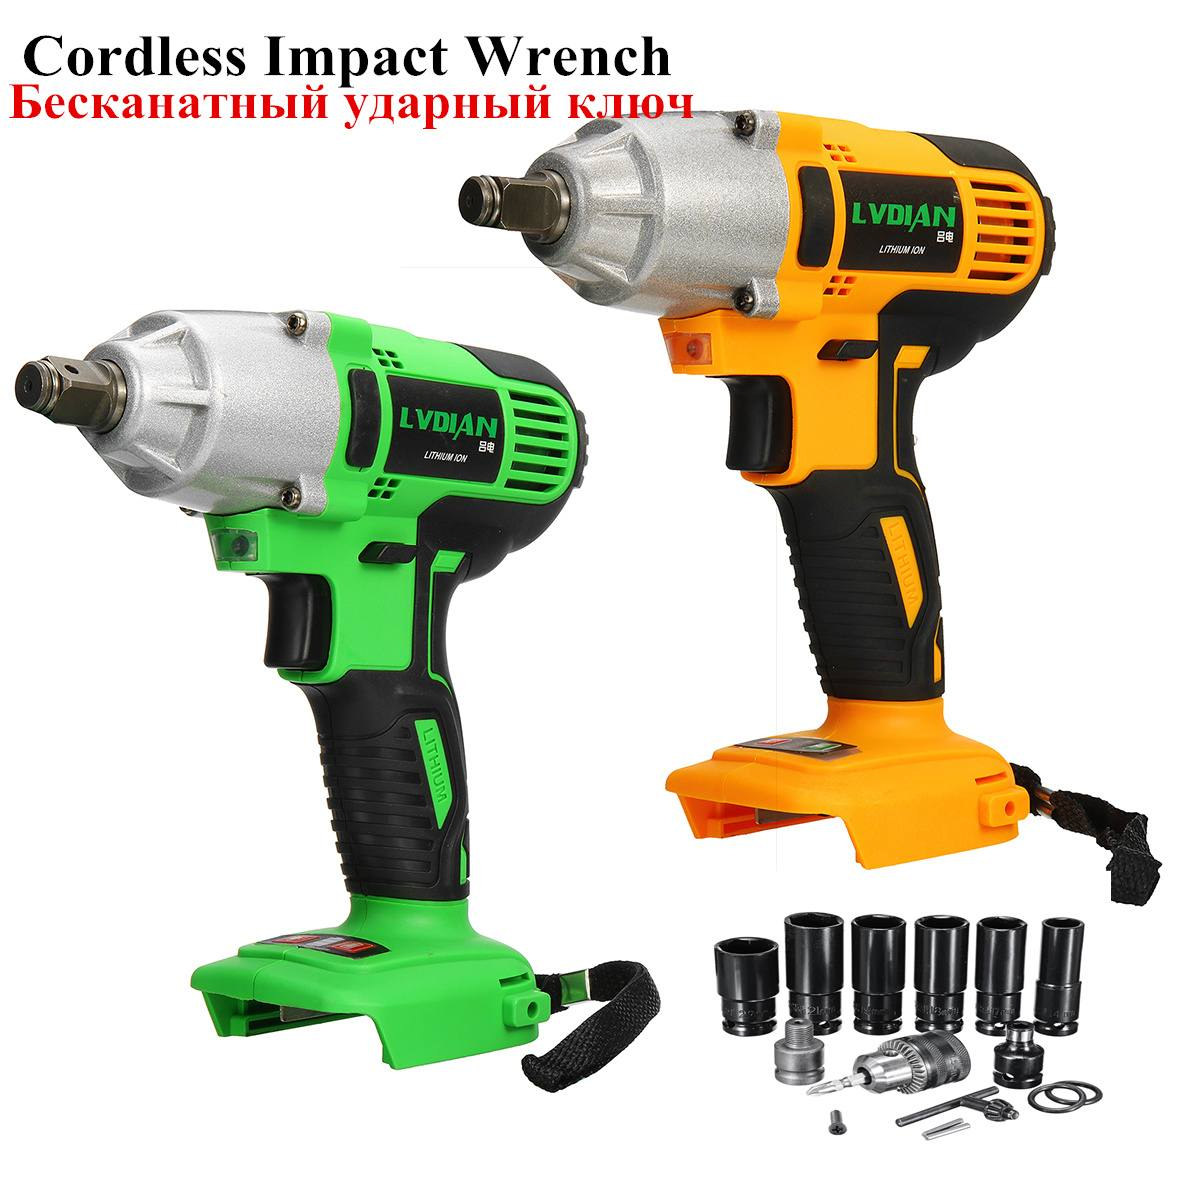 Cordless Impact Wrench 630NM Electric Wrench Replacement For Makita Battery Impact Wrench Body Only Battery Drill With Sockets